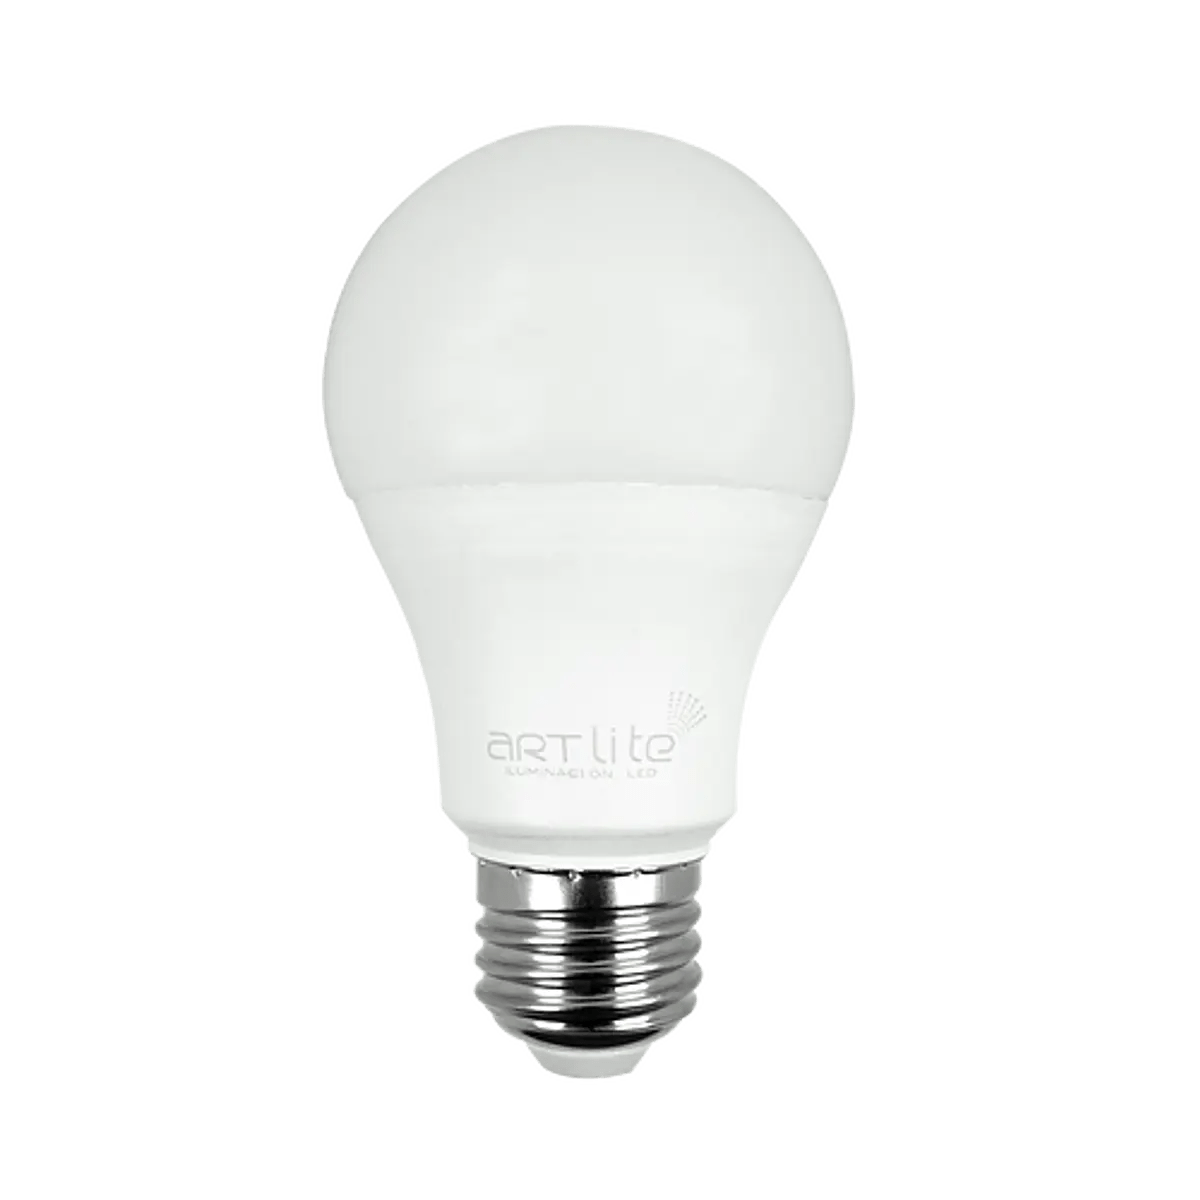 Lamparas Led 220 Ala 017 Lampara Led Bulbo 12w E26 Frio Avanlucemx